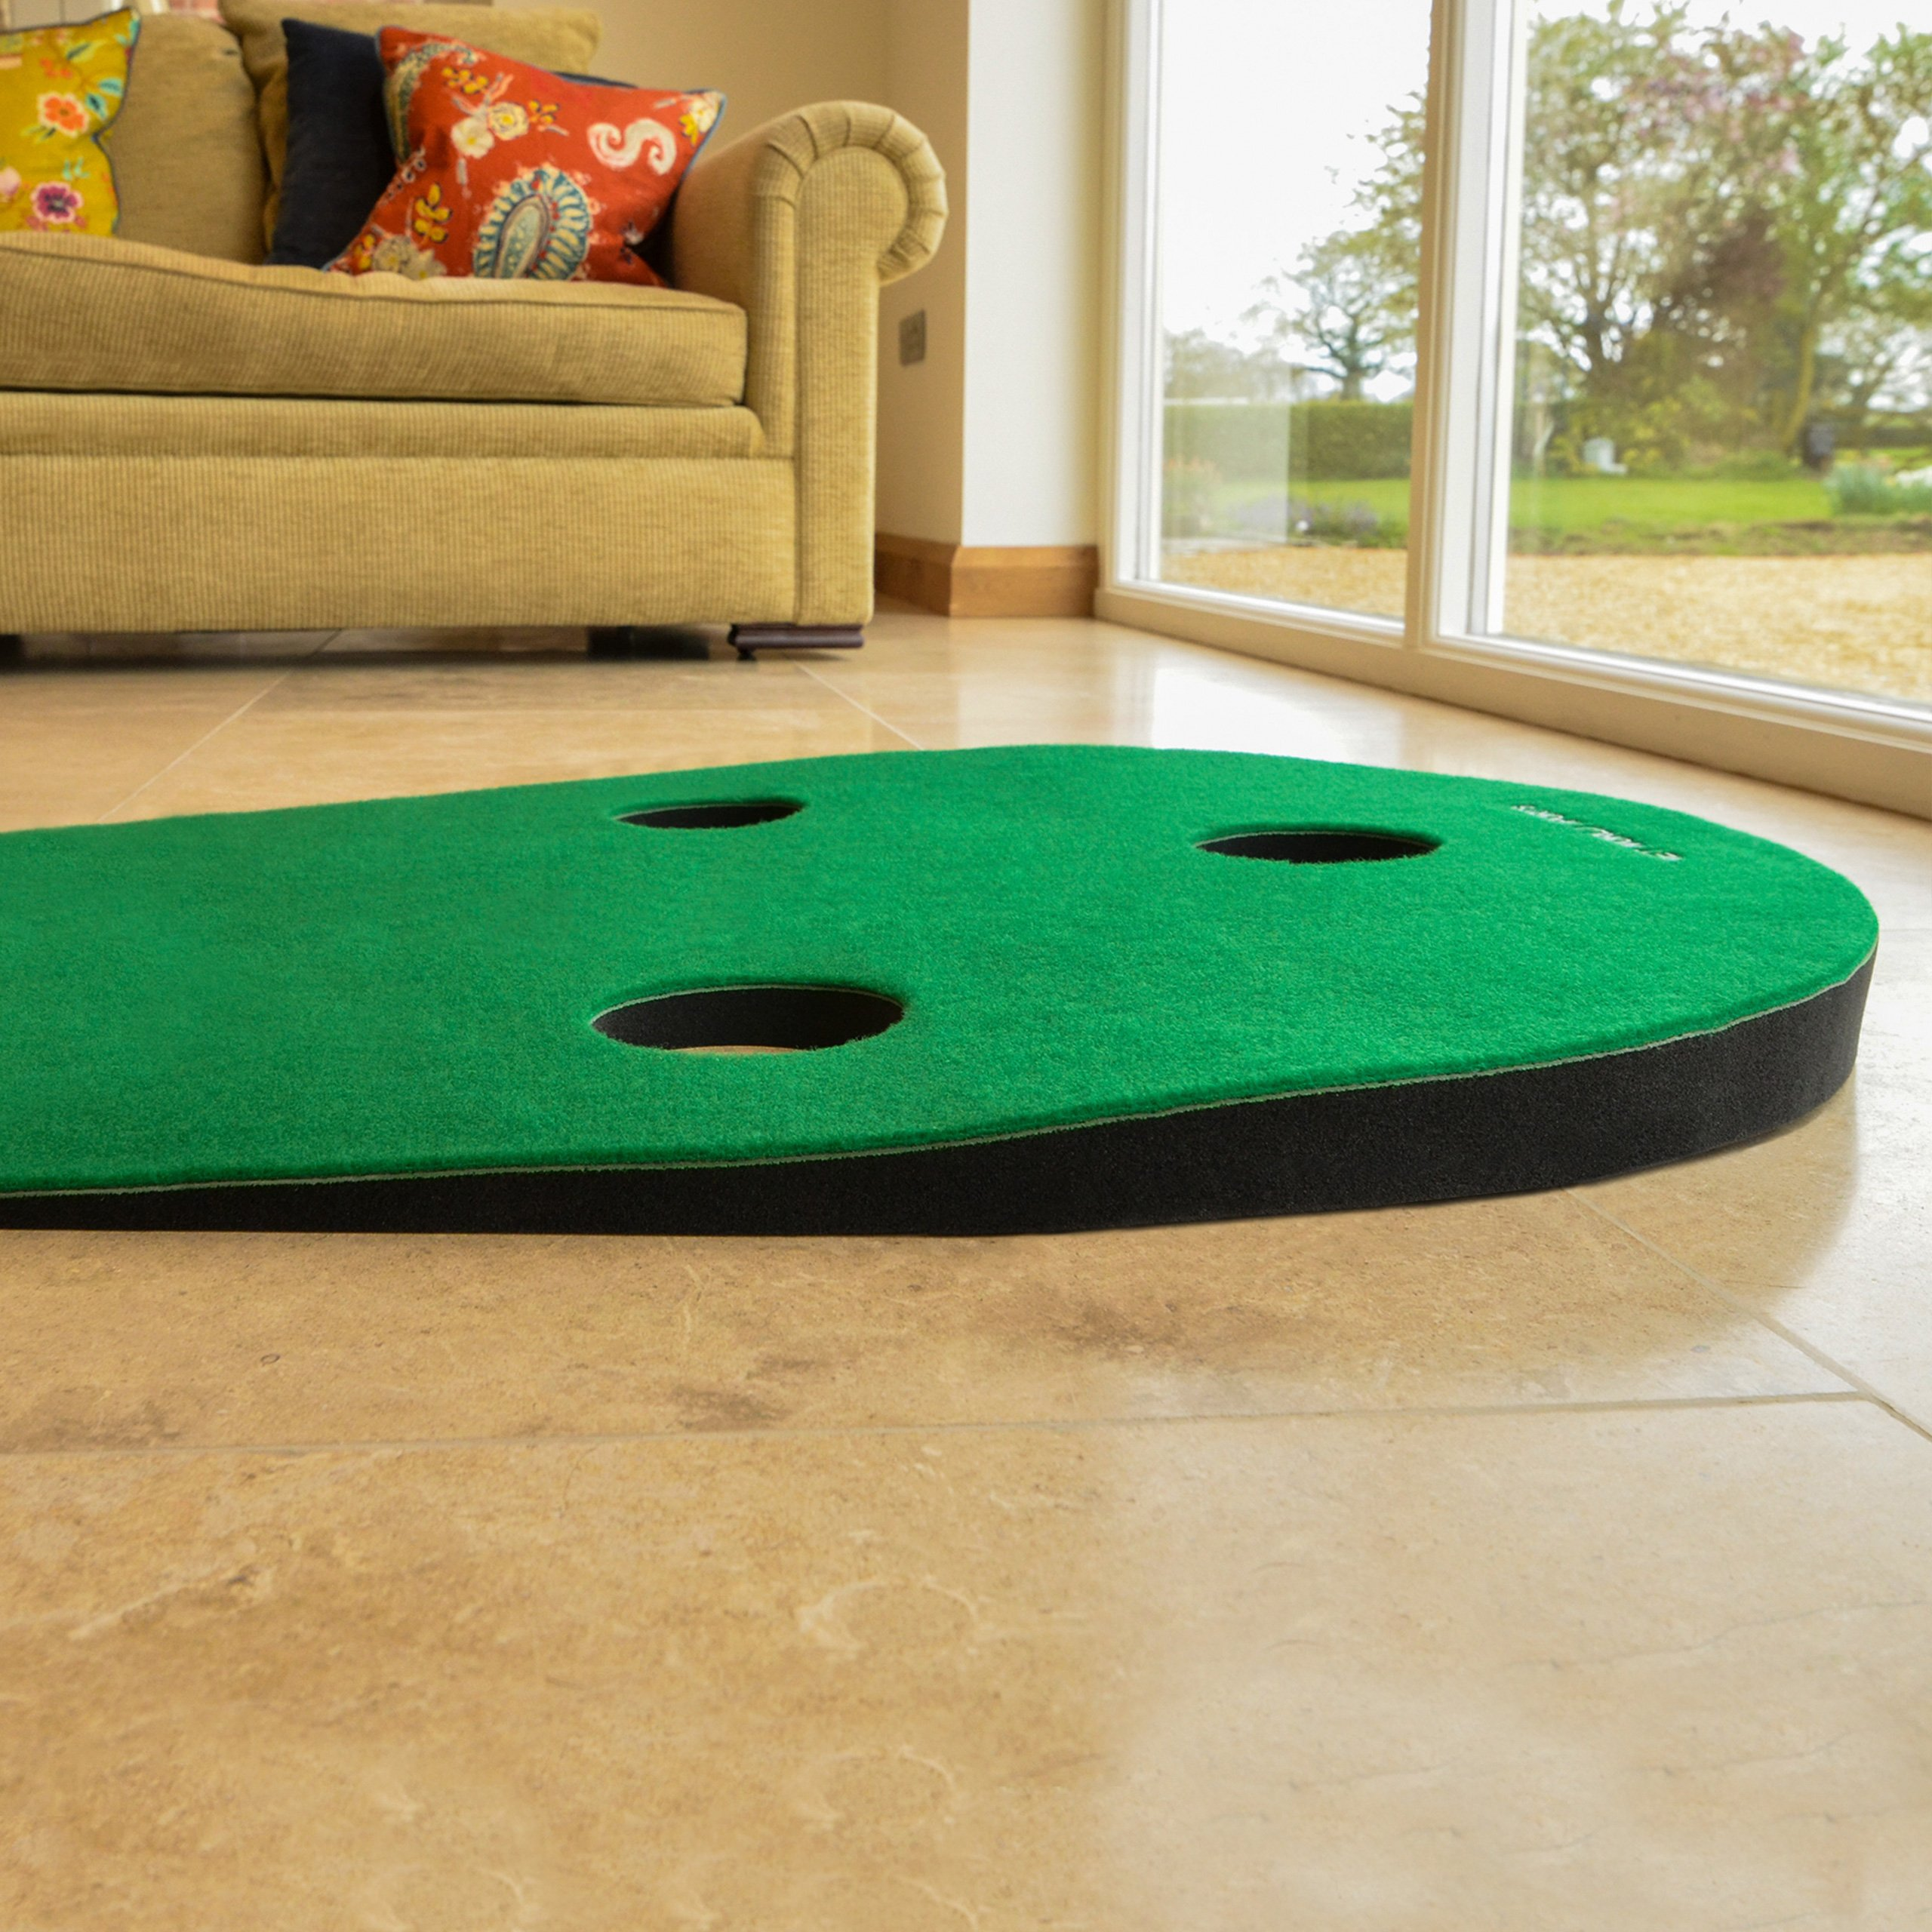 FORB Home Golf Putting Mat 10ft Long - Conquer The Green In Your Own Home! [Net World Sports] by FORB (Image #9)